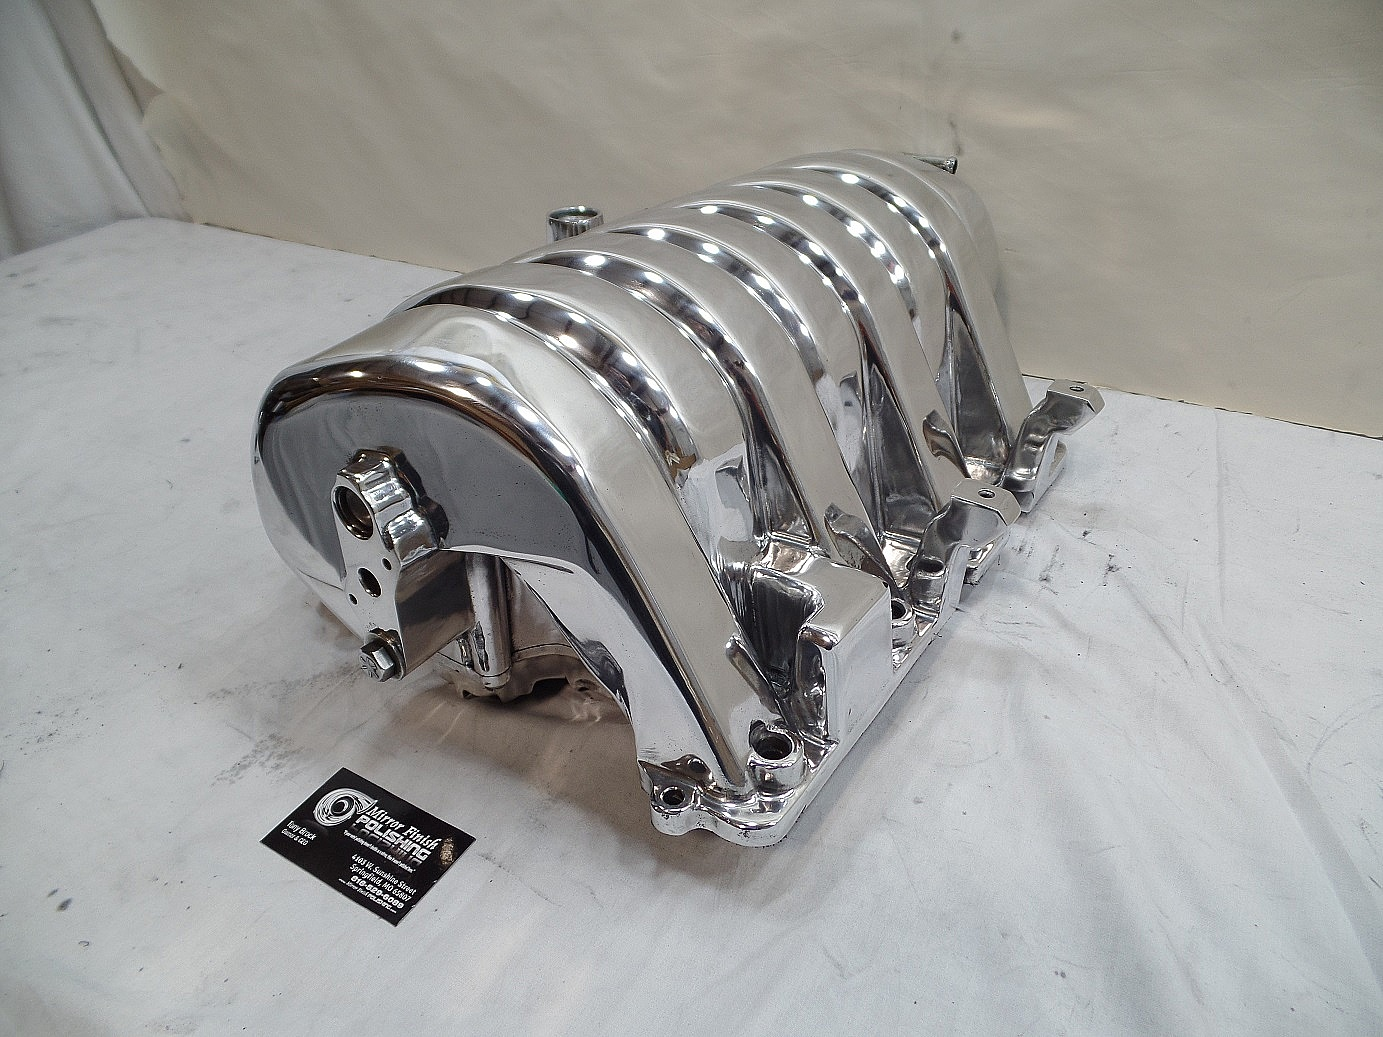 dodge hemi 6 4l intake manifold for 1973 duster aluminum. Black Bedroom Furniture Sets. Home Design Ideas